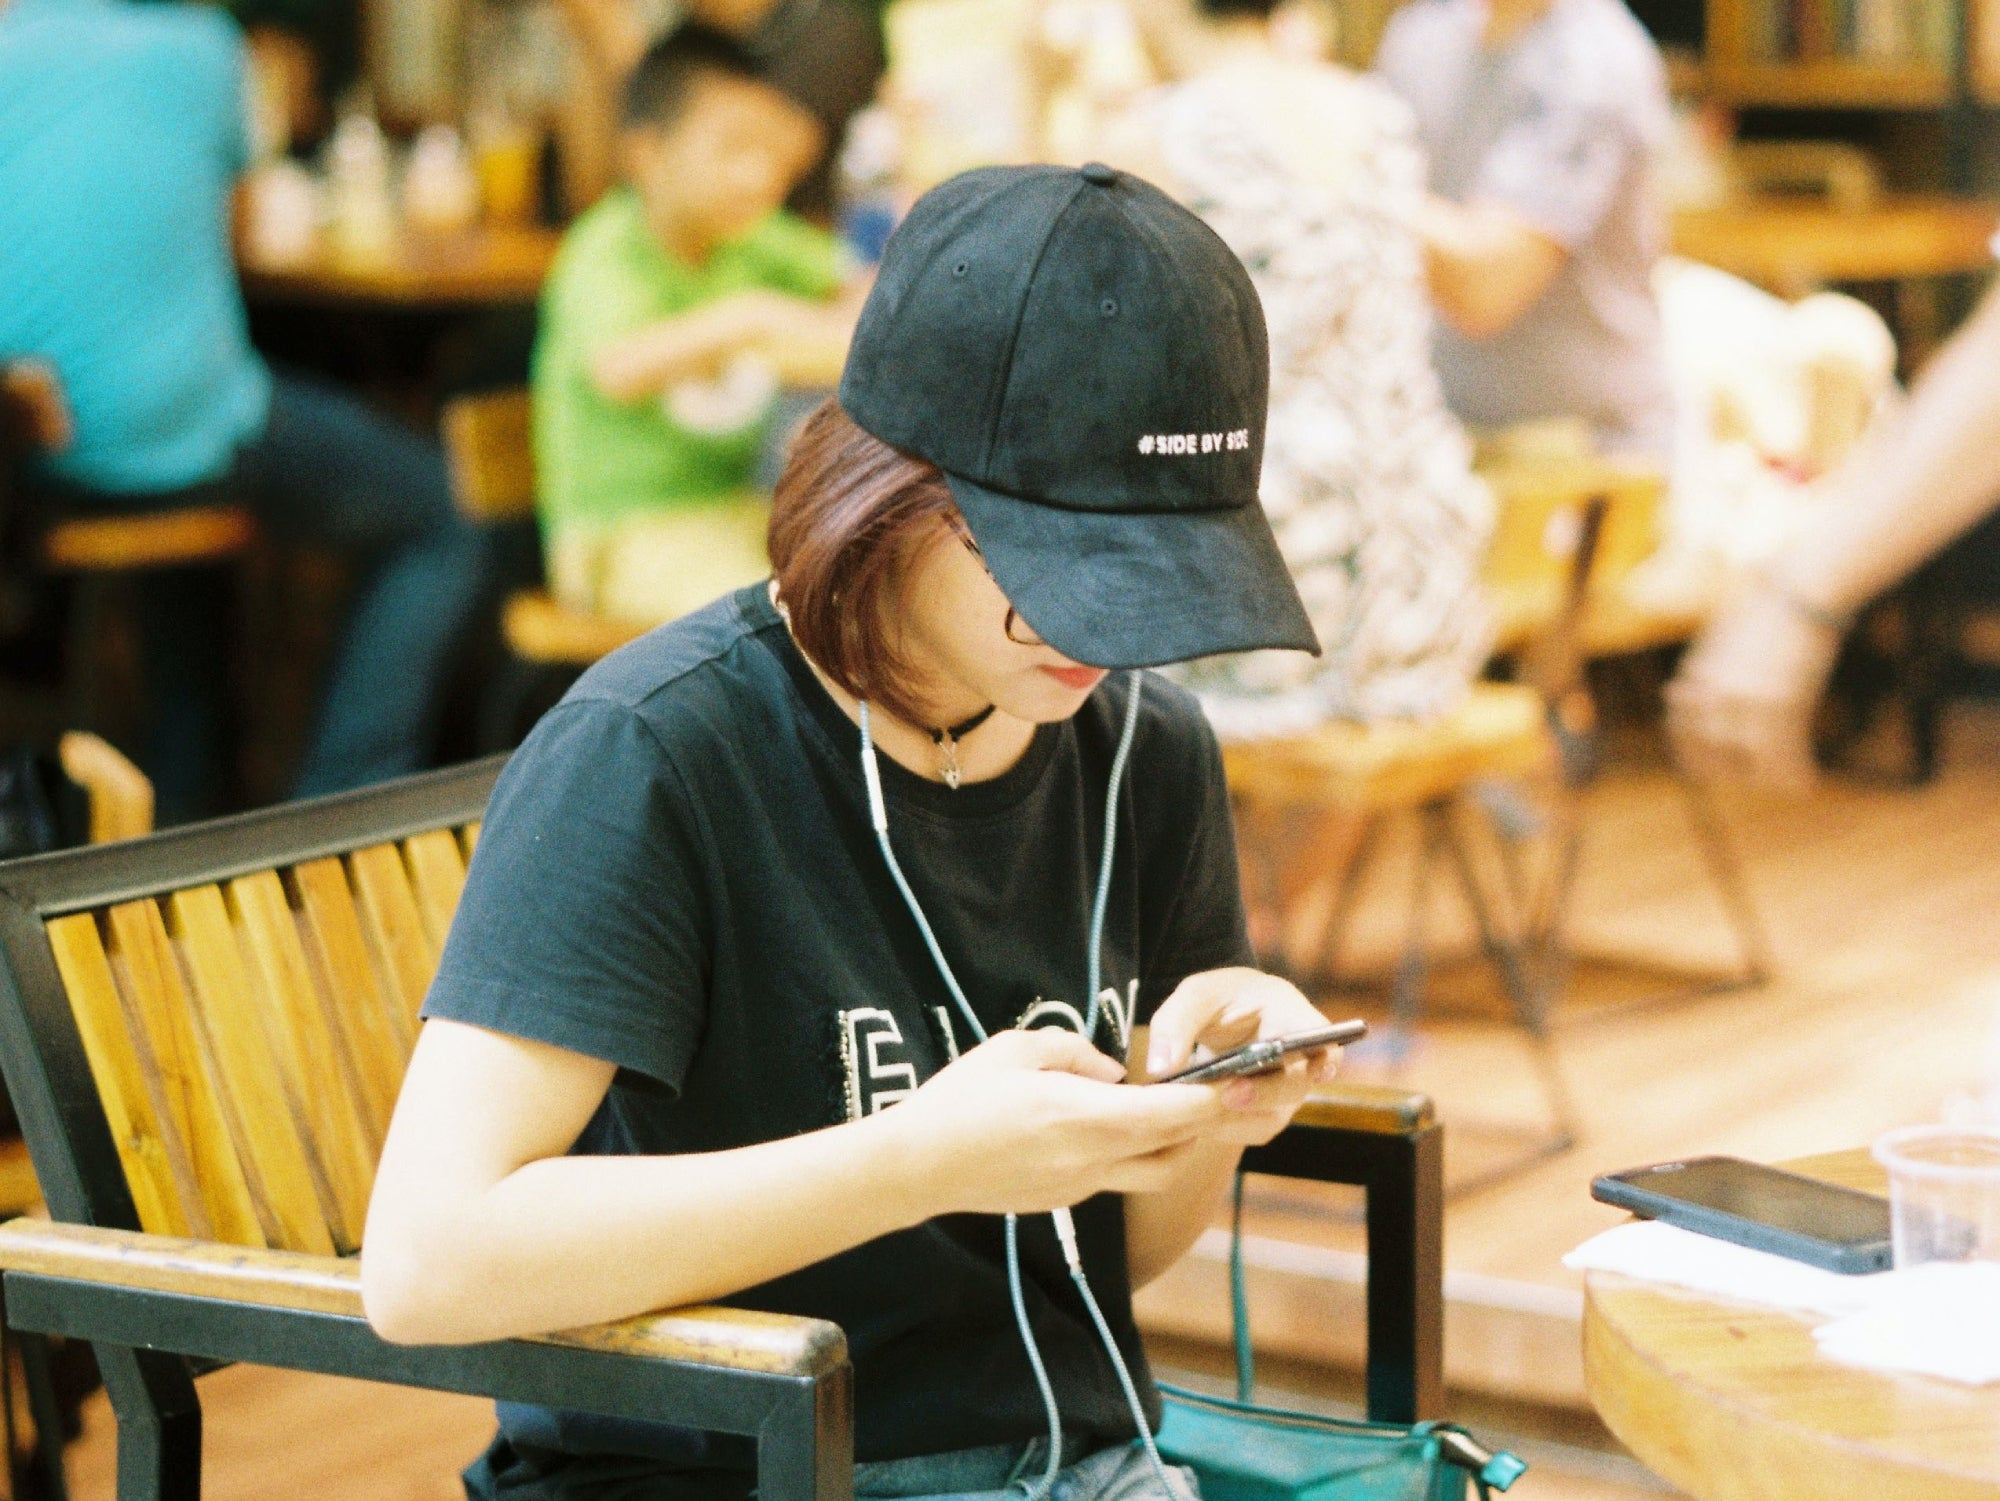 A person sitting at a coffee shop, using a phone while wearing headphones and a cap.